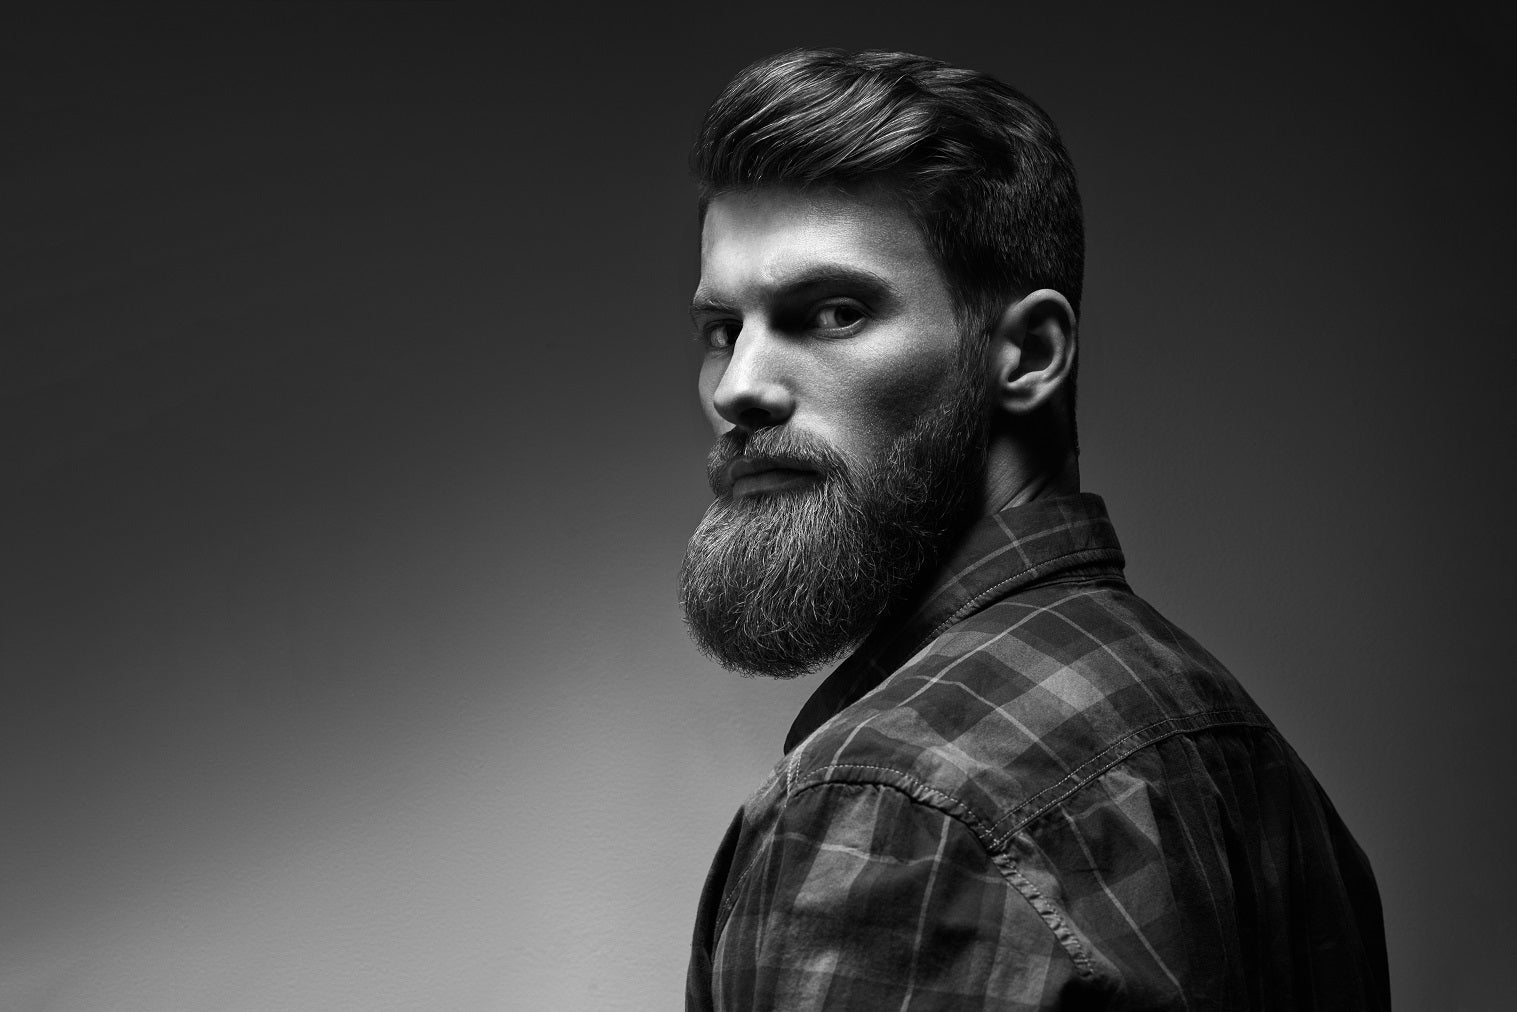 Modern man with a full beard wearing a flannel shirt